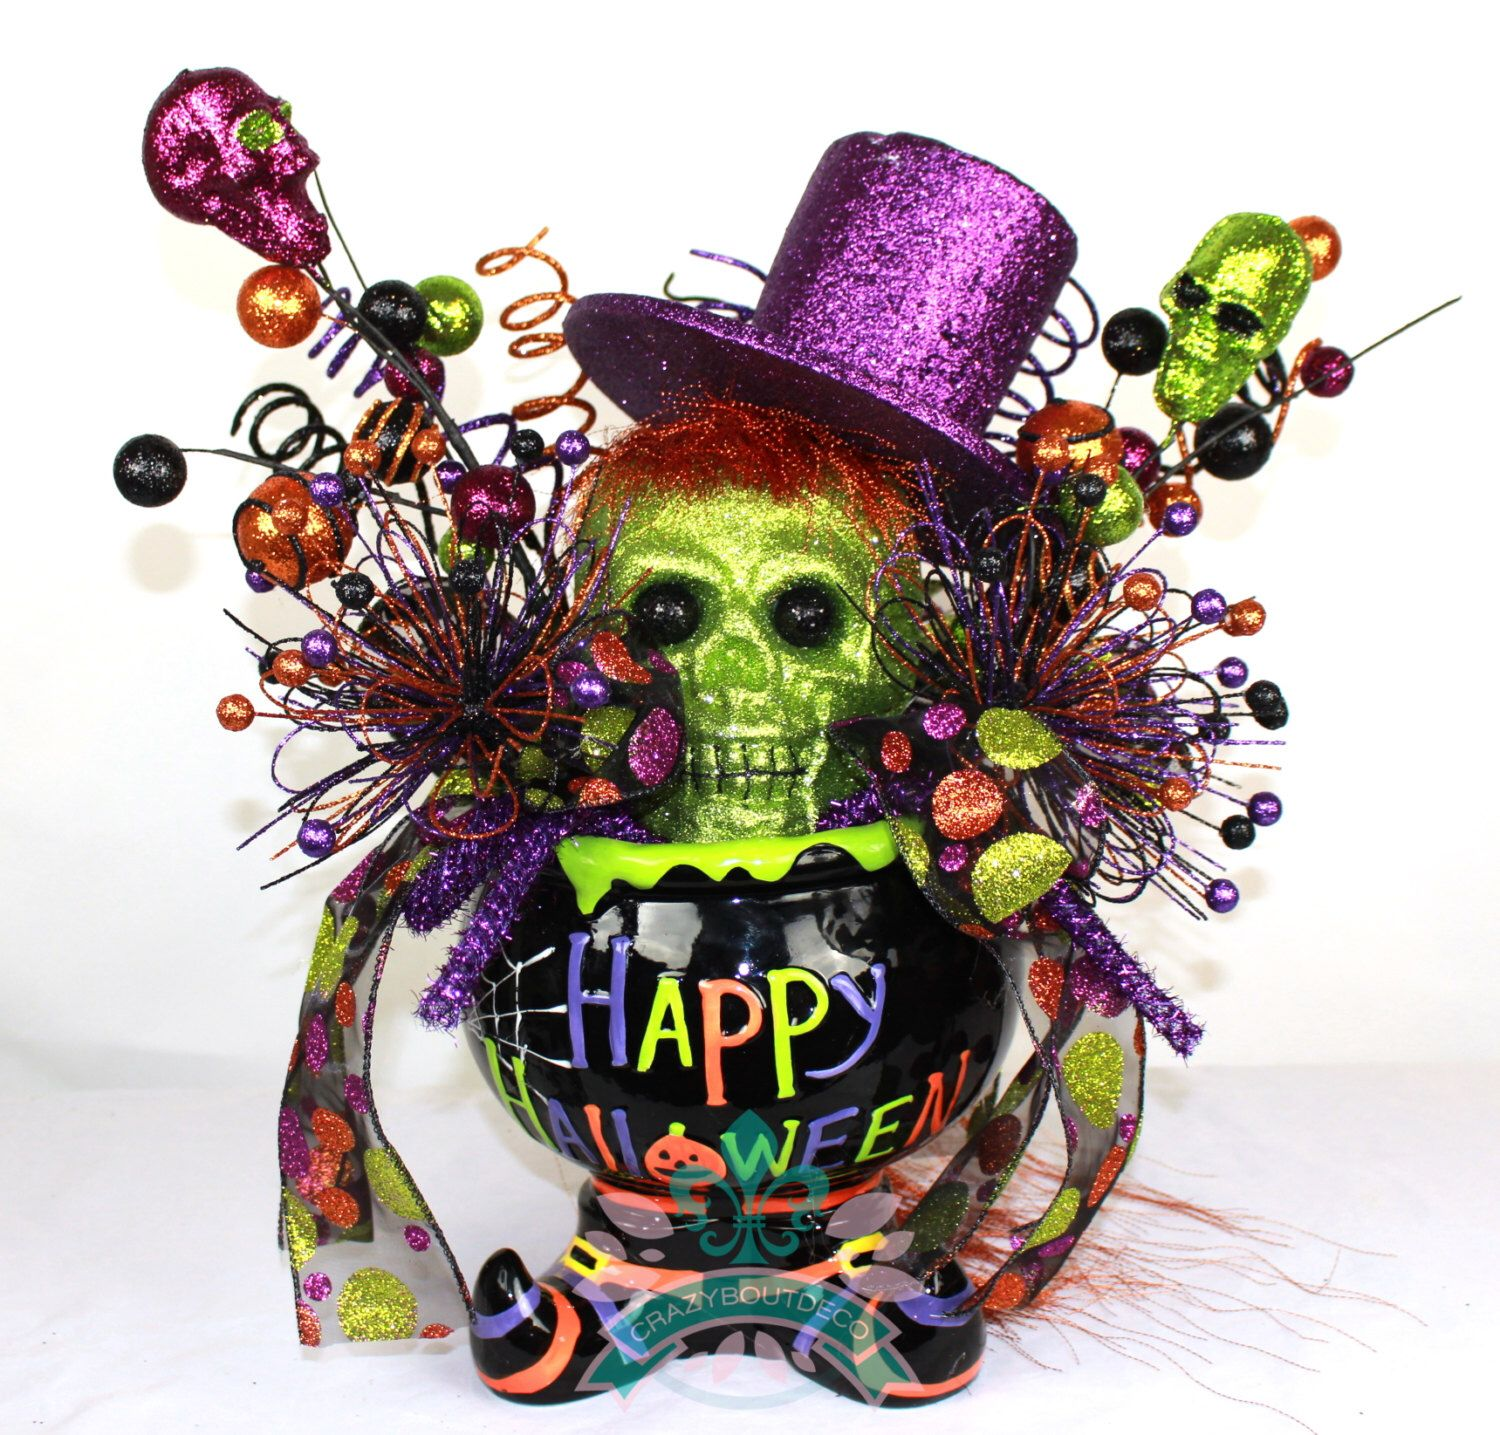 halloween decor halloween centerpiece happy halloween witchs cauldron halloween centerpiece floral arrangement by - Halloween Centerpiece